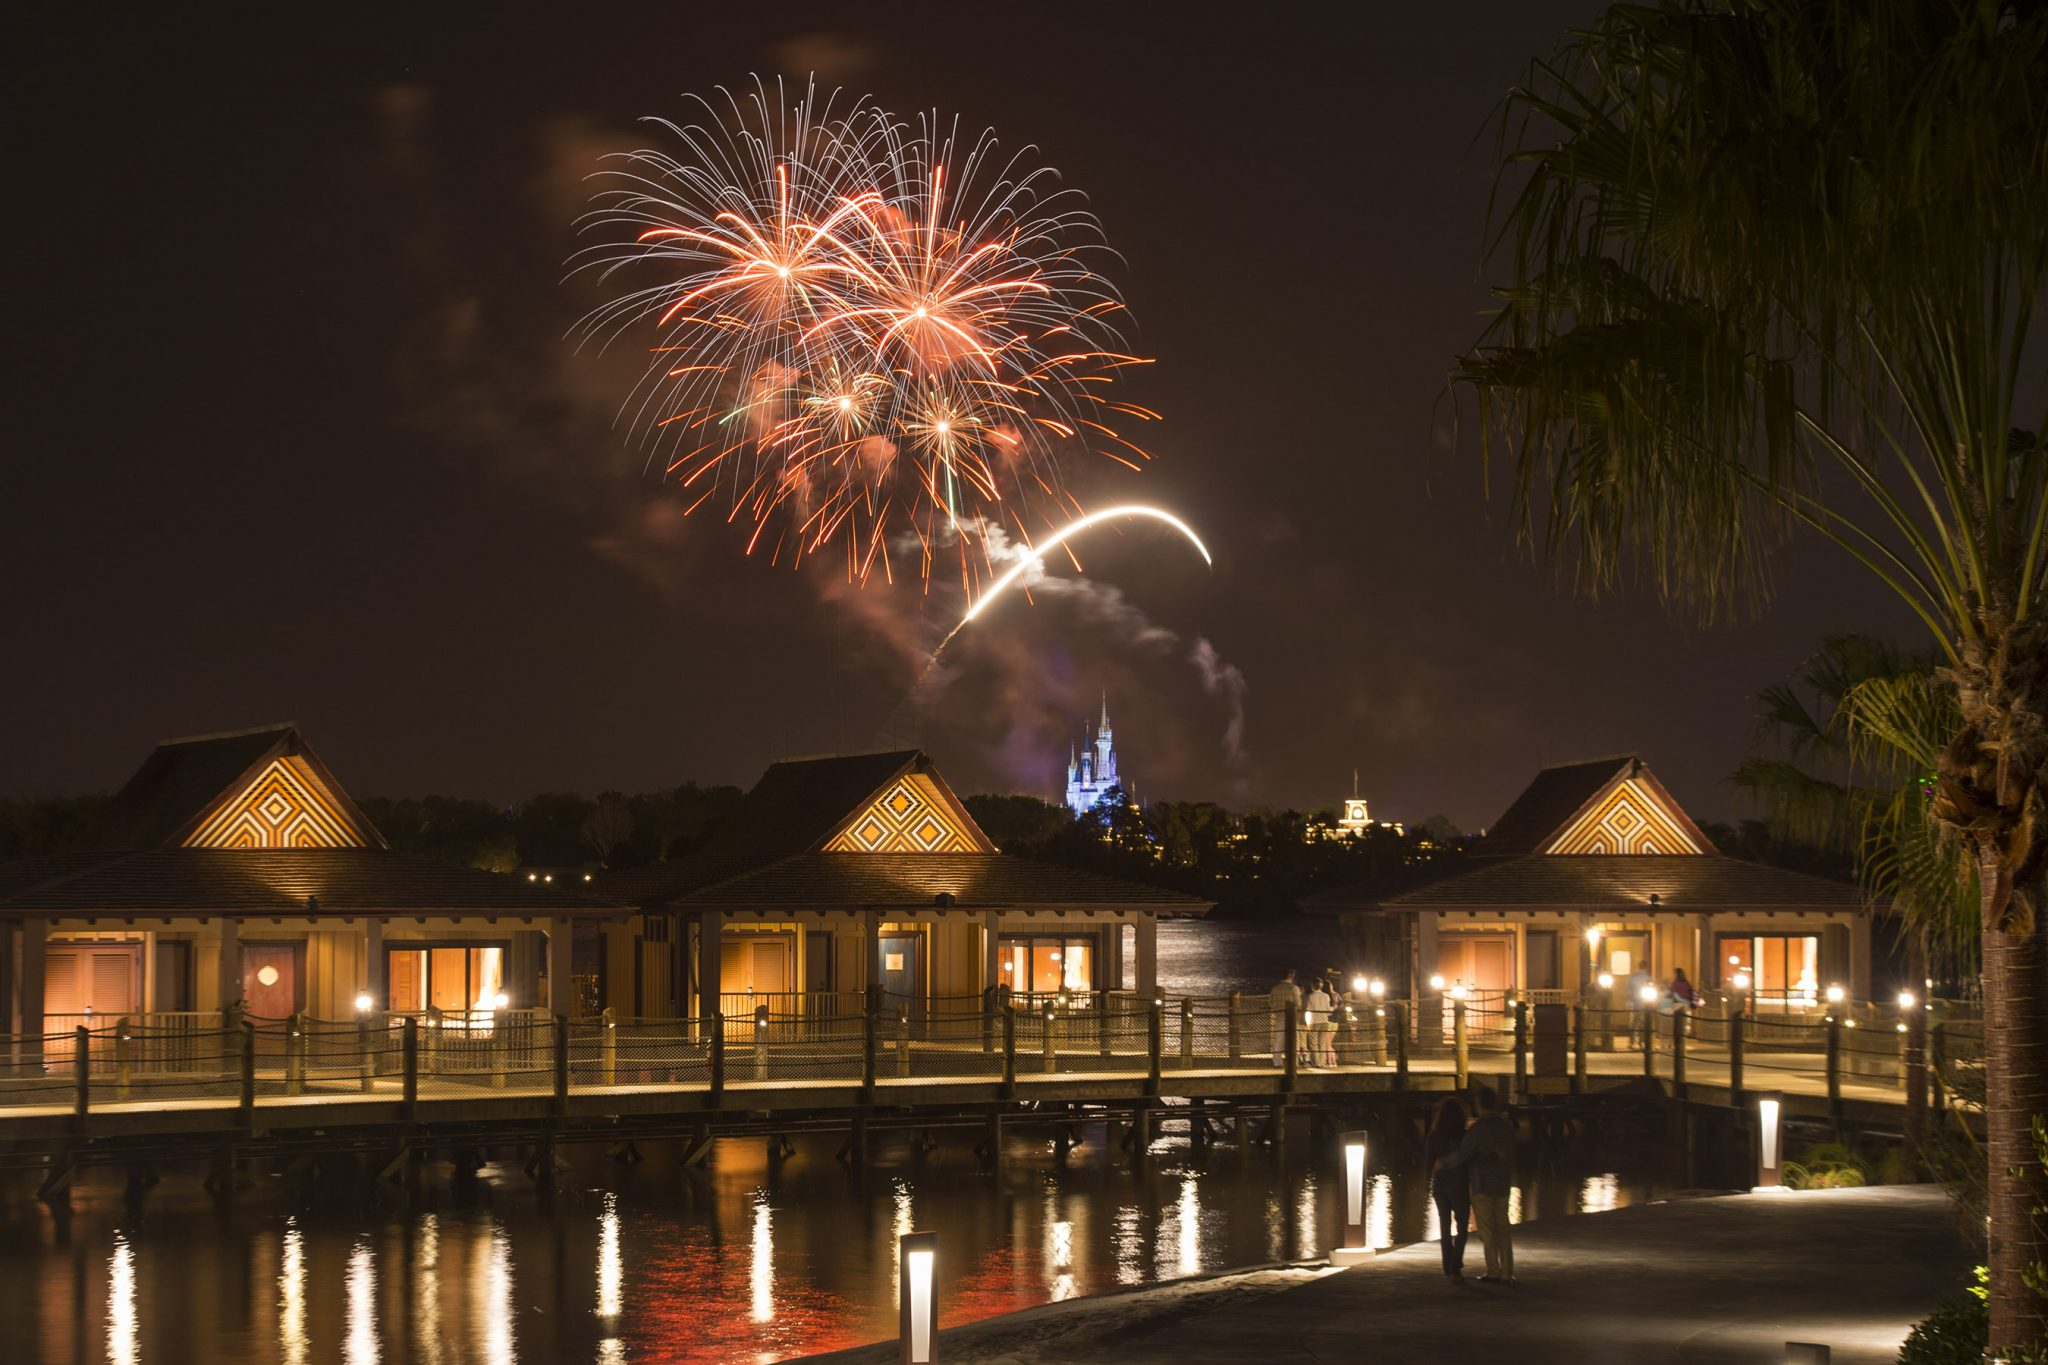 The Bora Bora Bungalows atÊDisney's Polynesian Villas & Bungalows: Fireworks Over Magic Kingdom